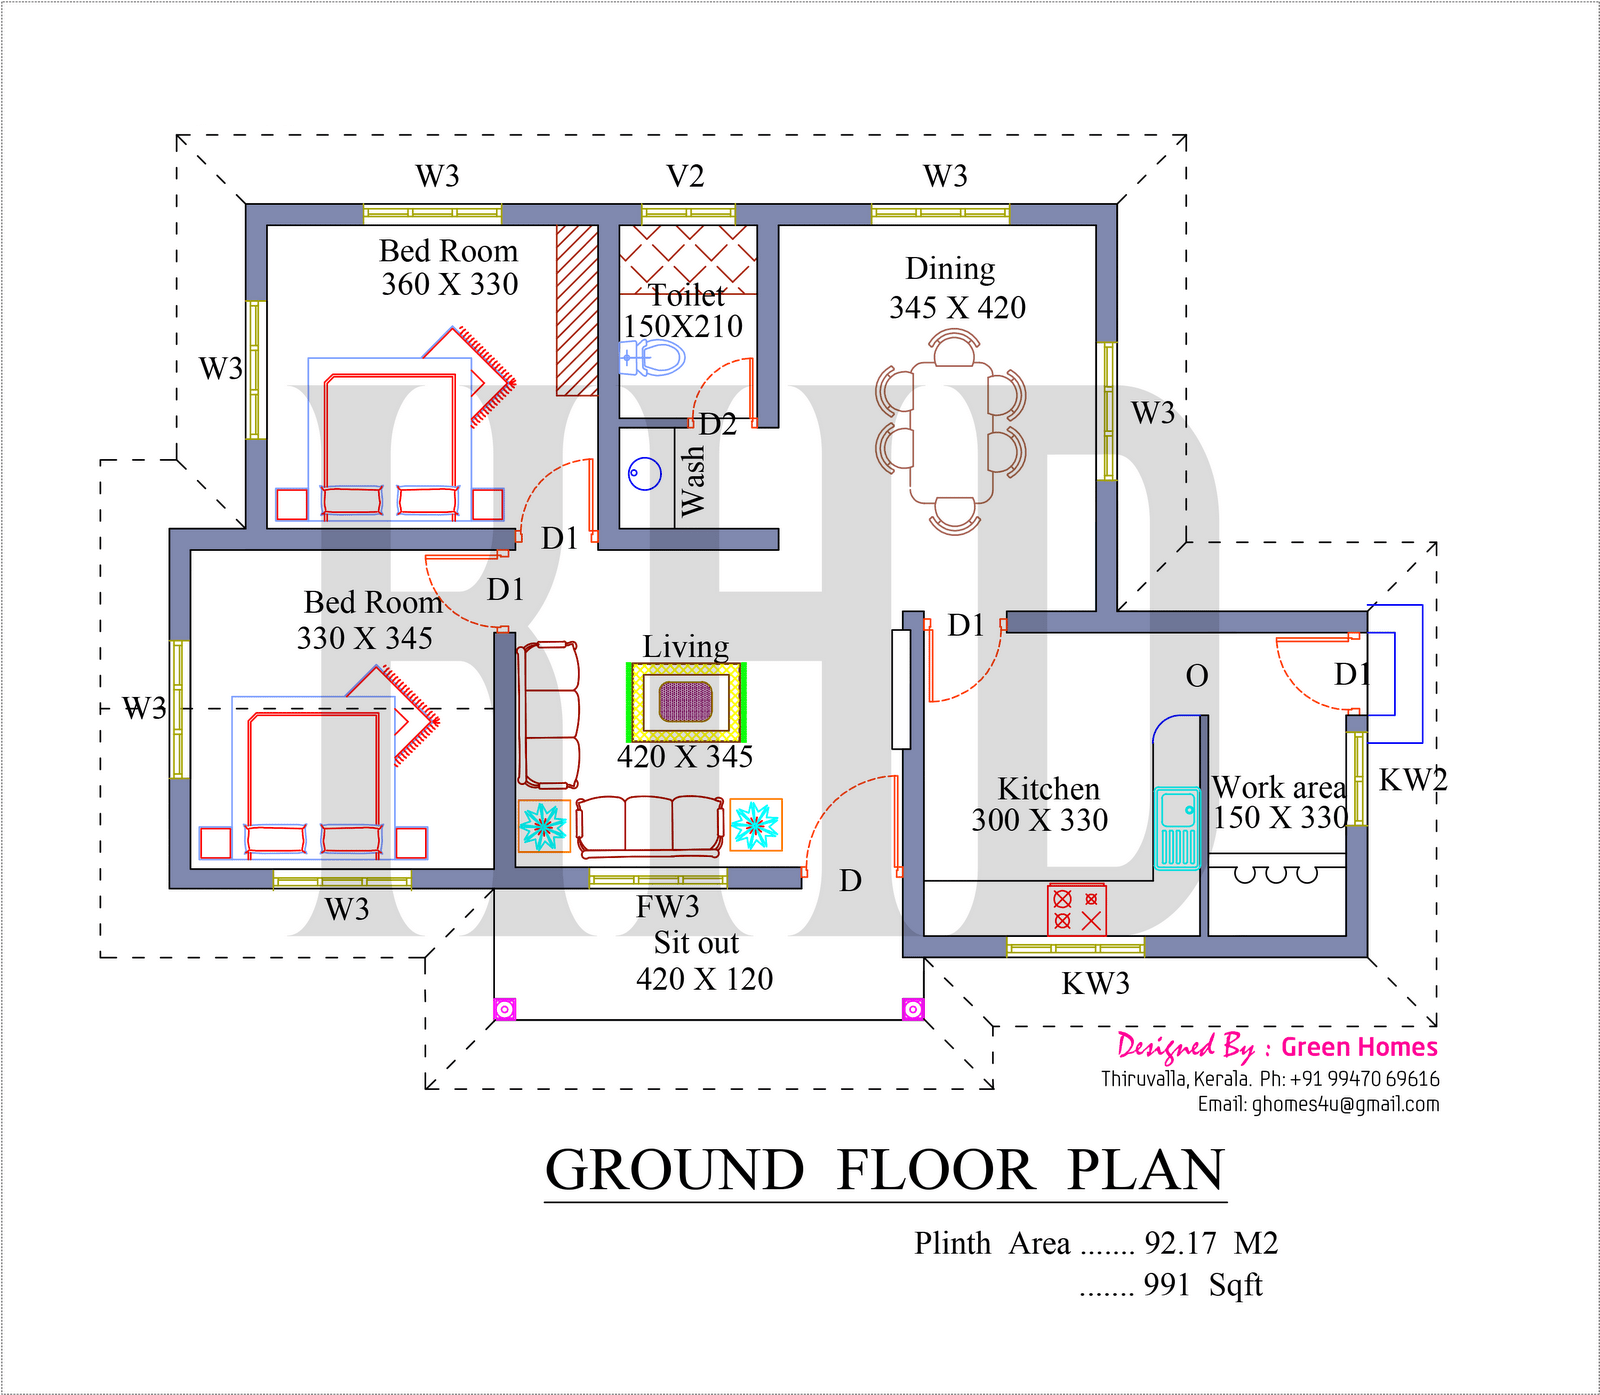 Low Cost House In Kerala With Plan Photos 991 Sq Ft Khp: home layout planner